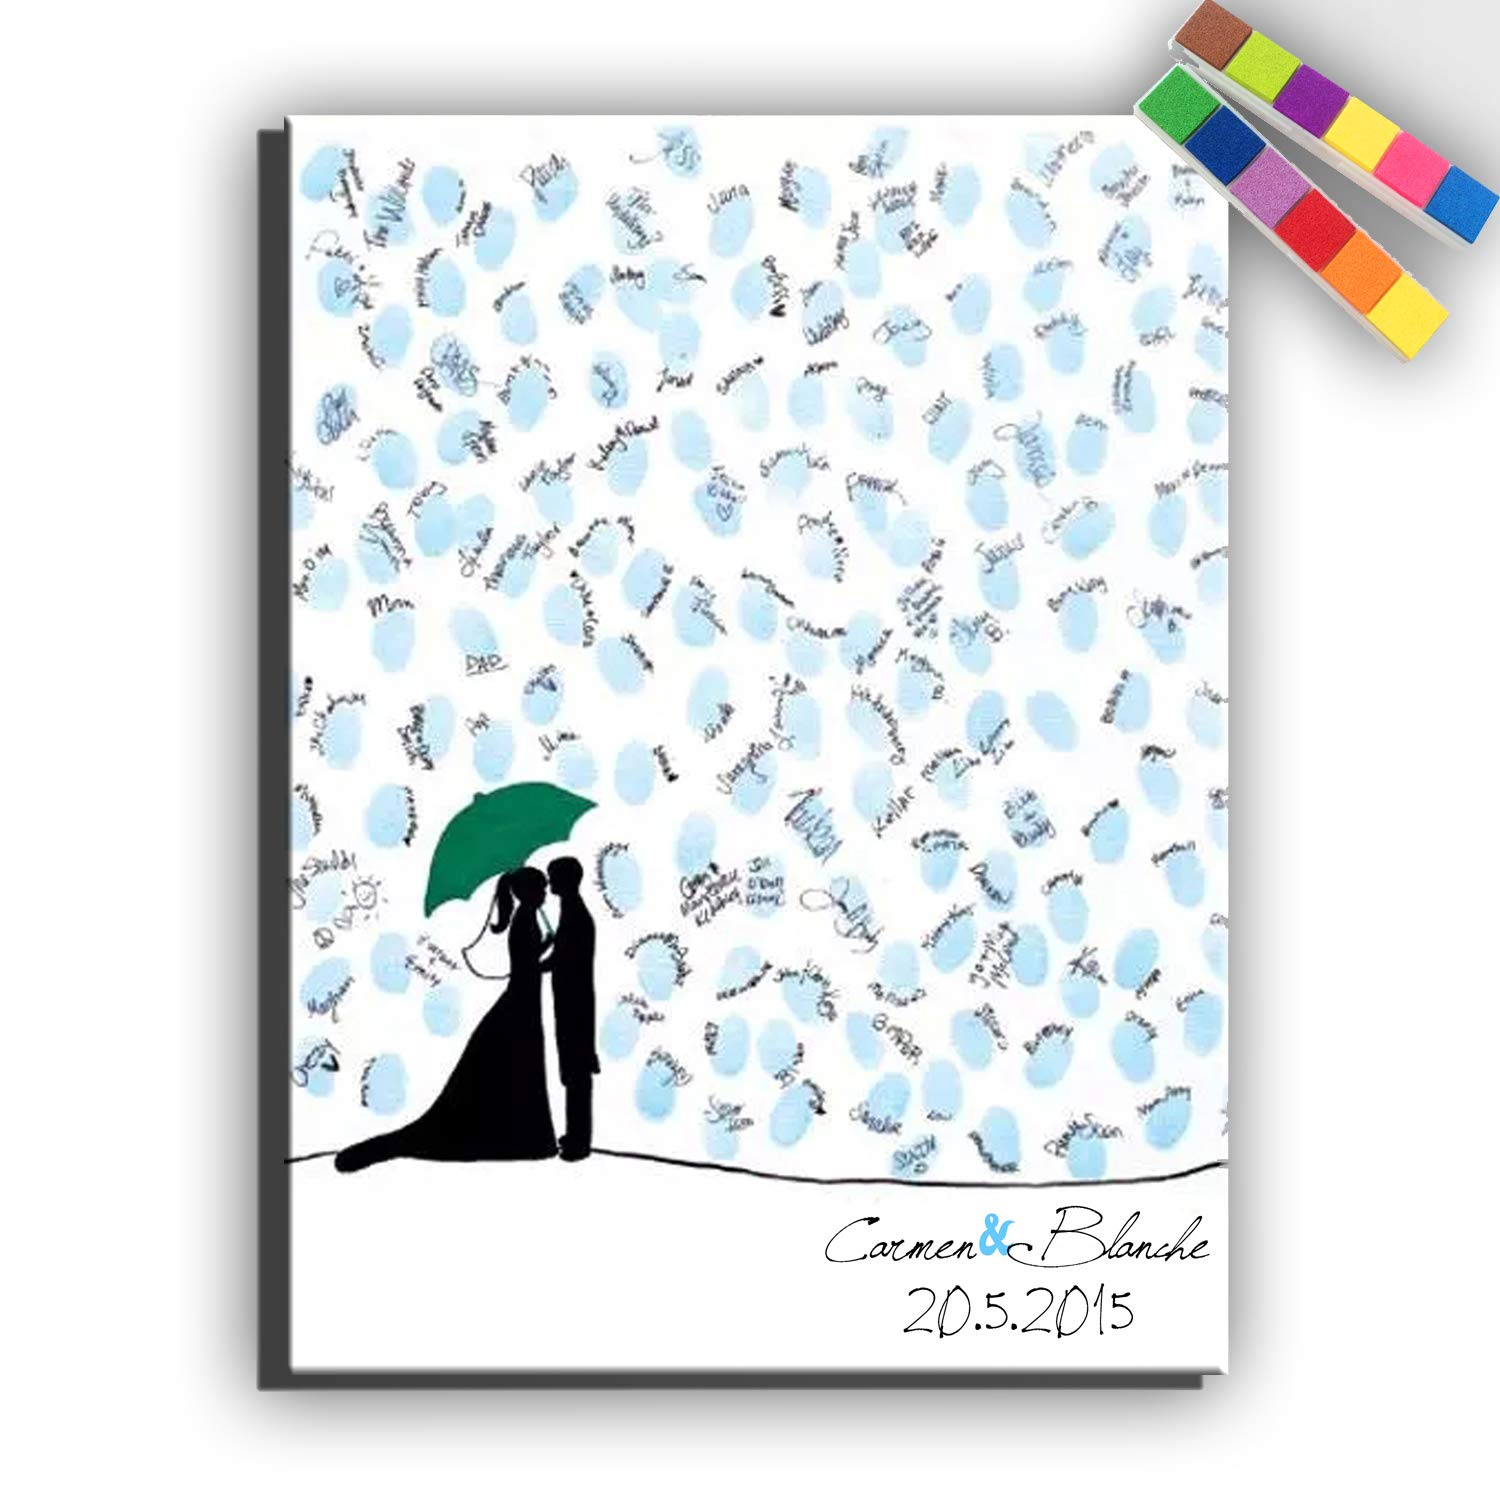 Yiju Fingerprint Signature Canvas Print Lovers in The rain Wedding Tree Wedding Gift Wedding Decoration Party Gift Wedding Name (Included 12 Ink Colors) (35x50cm no Framed)